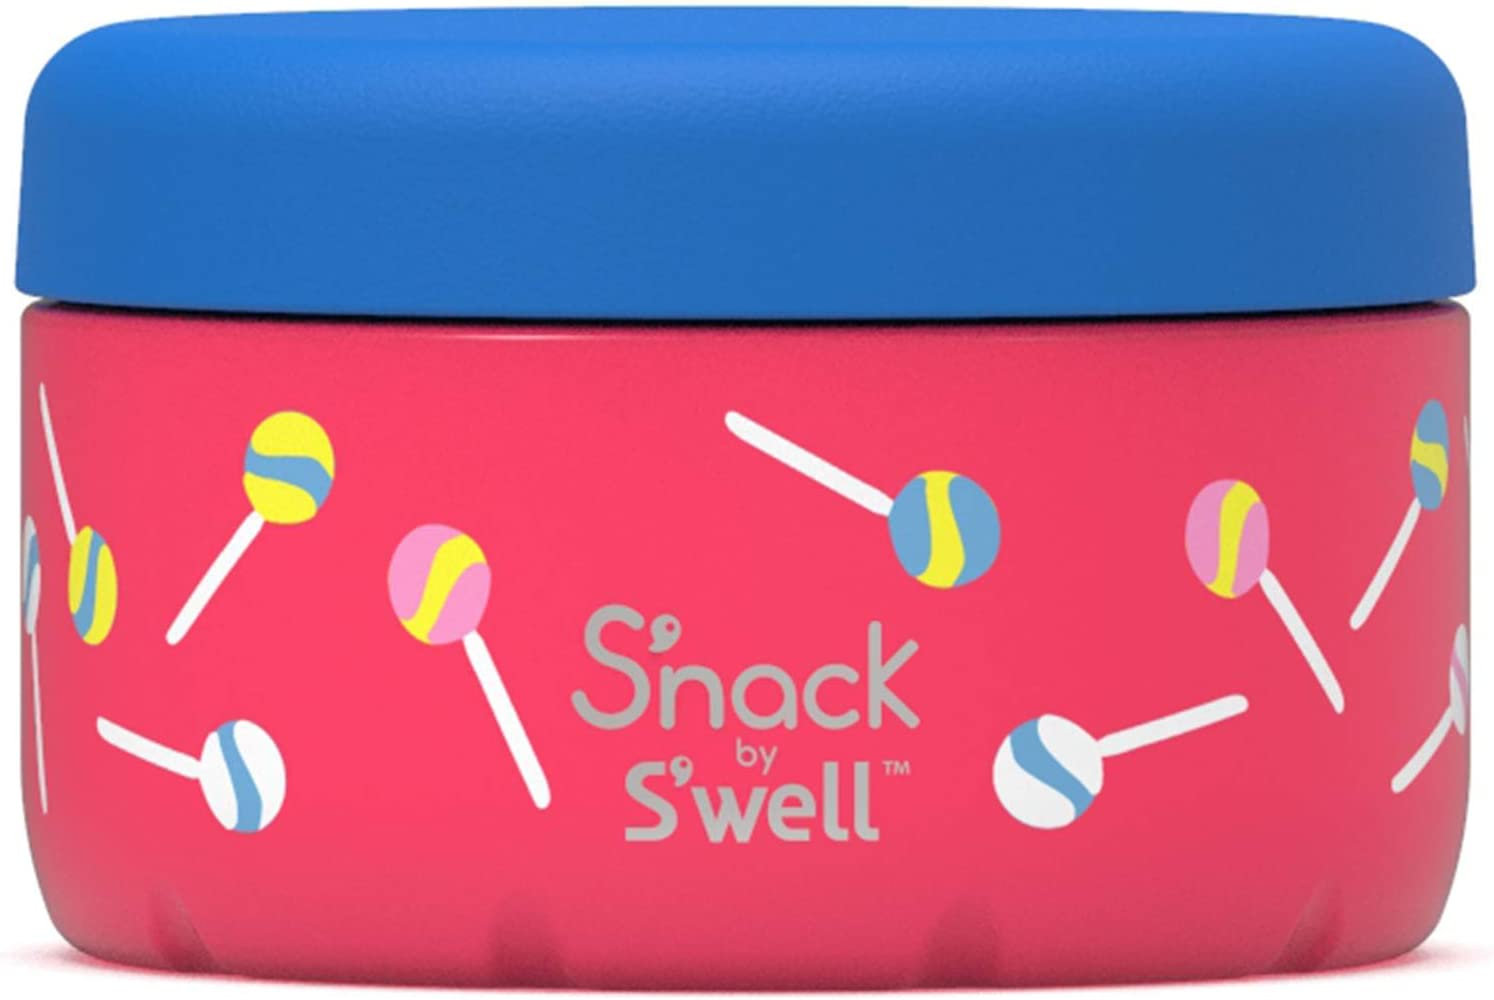 S'well Stainless Steel Container-10 Oz-Lollipos Double-Layered Insulated Bowls Keep Food and Drinks Cold and Hot - BPA-Free Water Bottle, 10oz, Lollipop